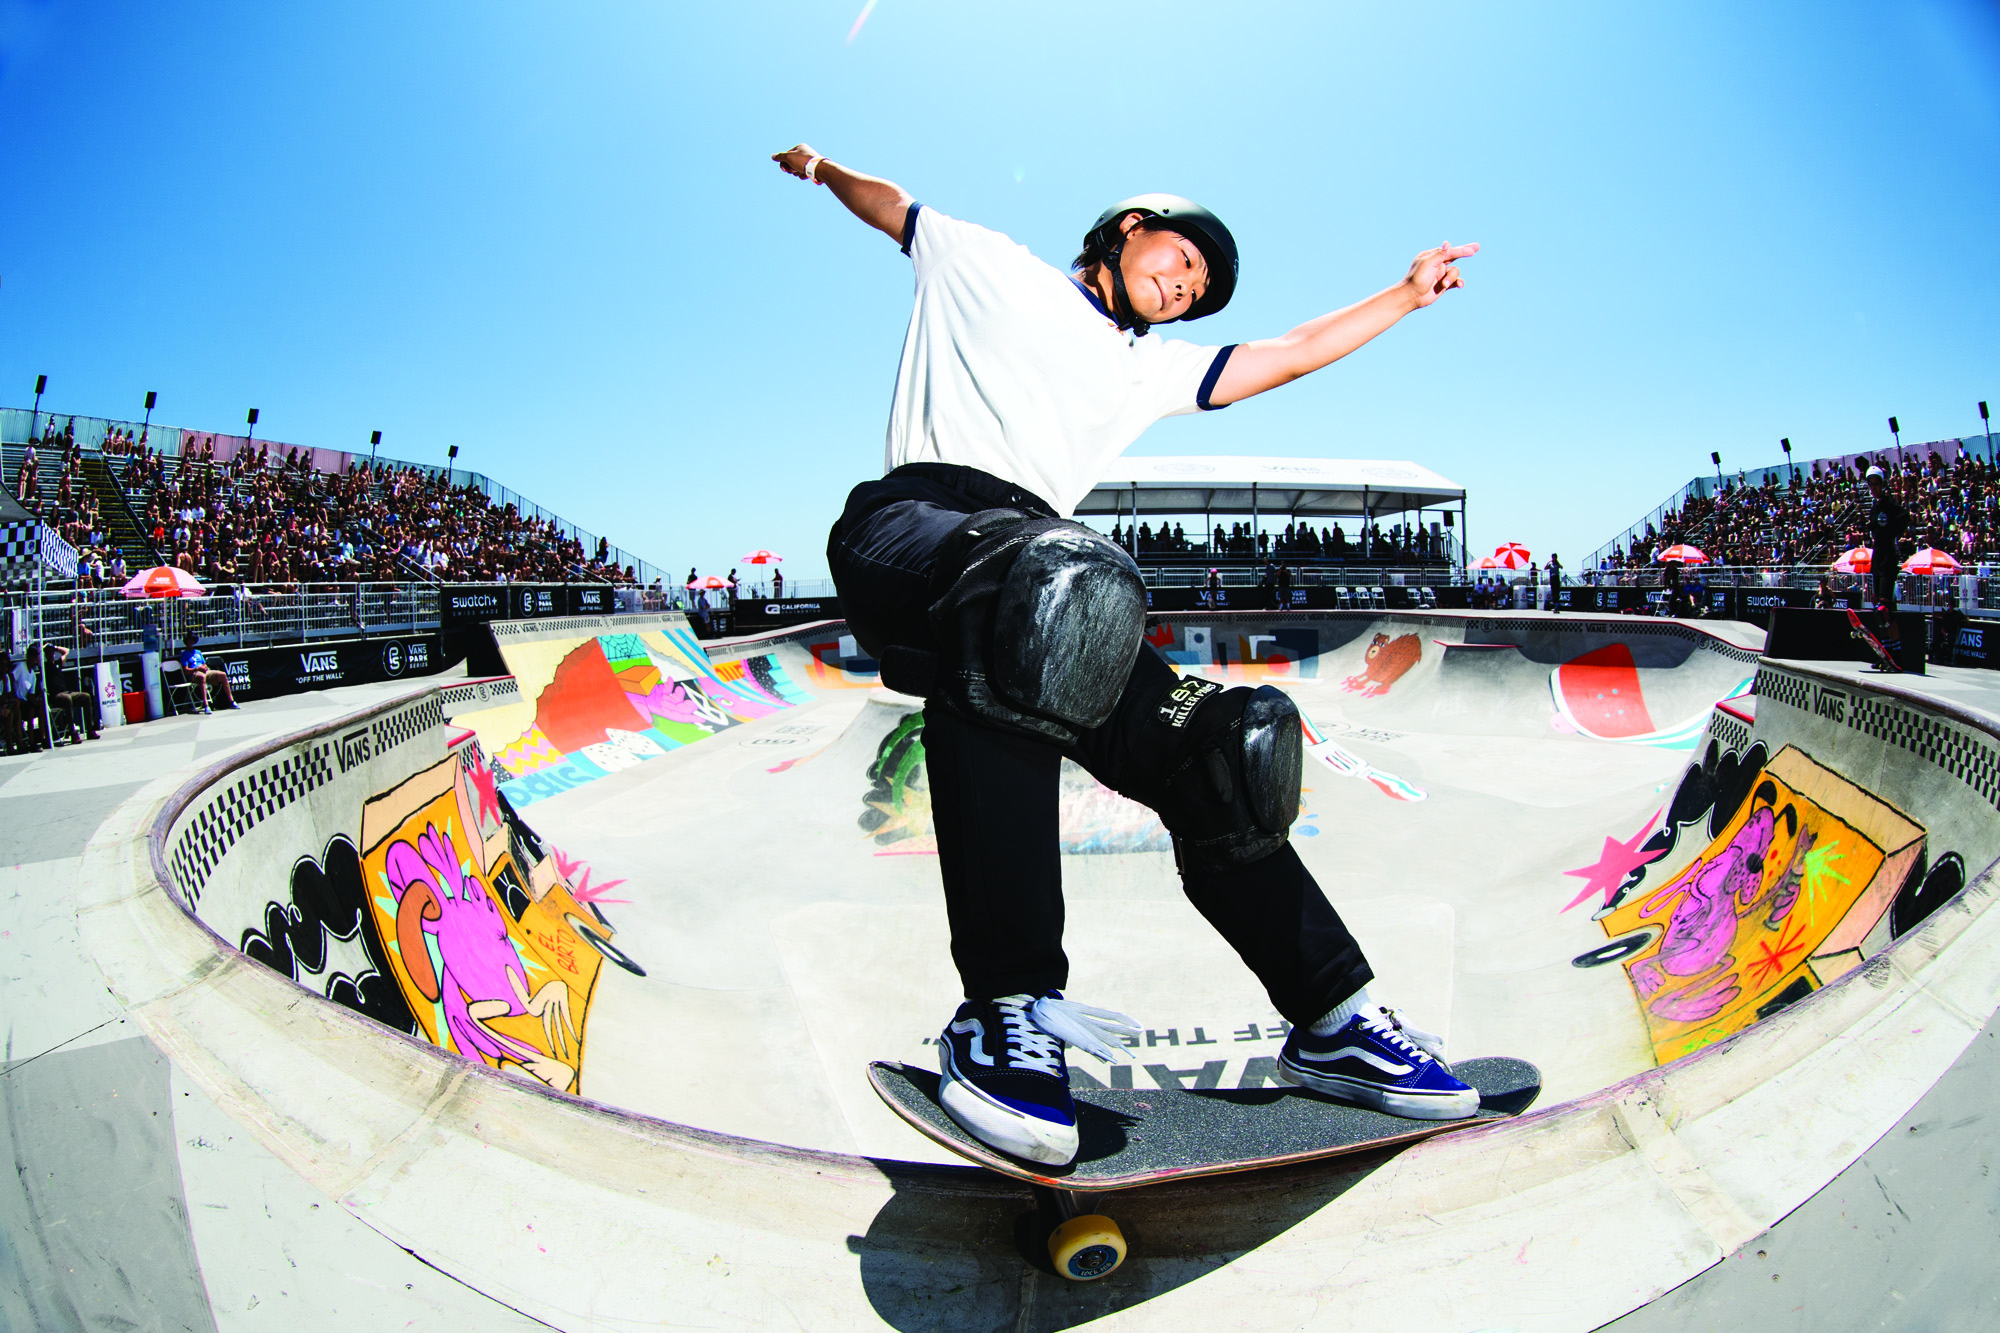 Our interview with skateboarder Mami Tezuka